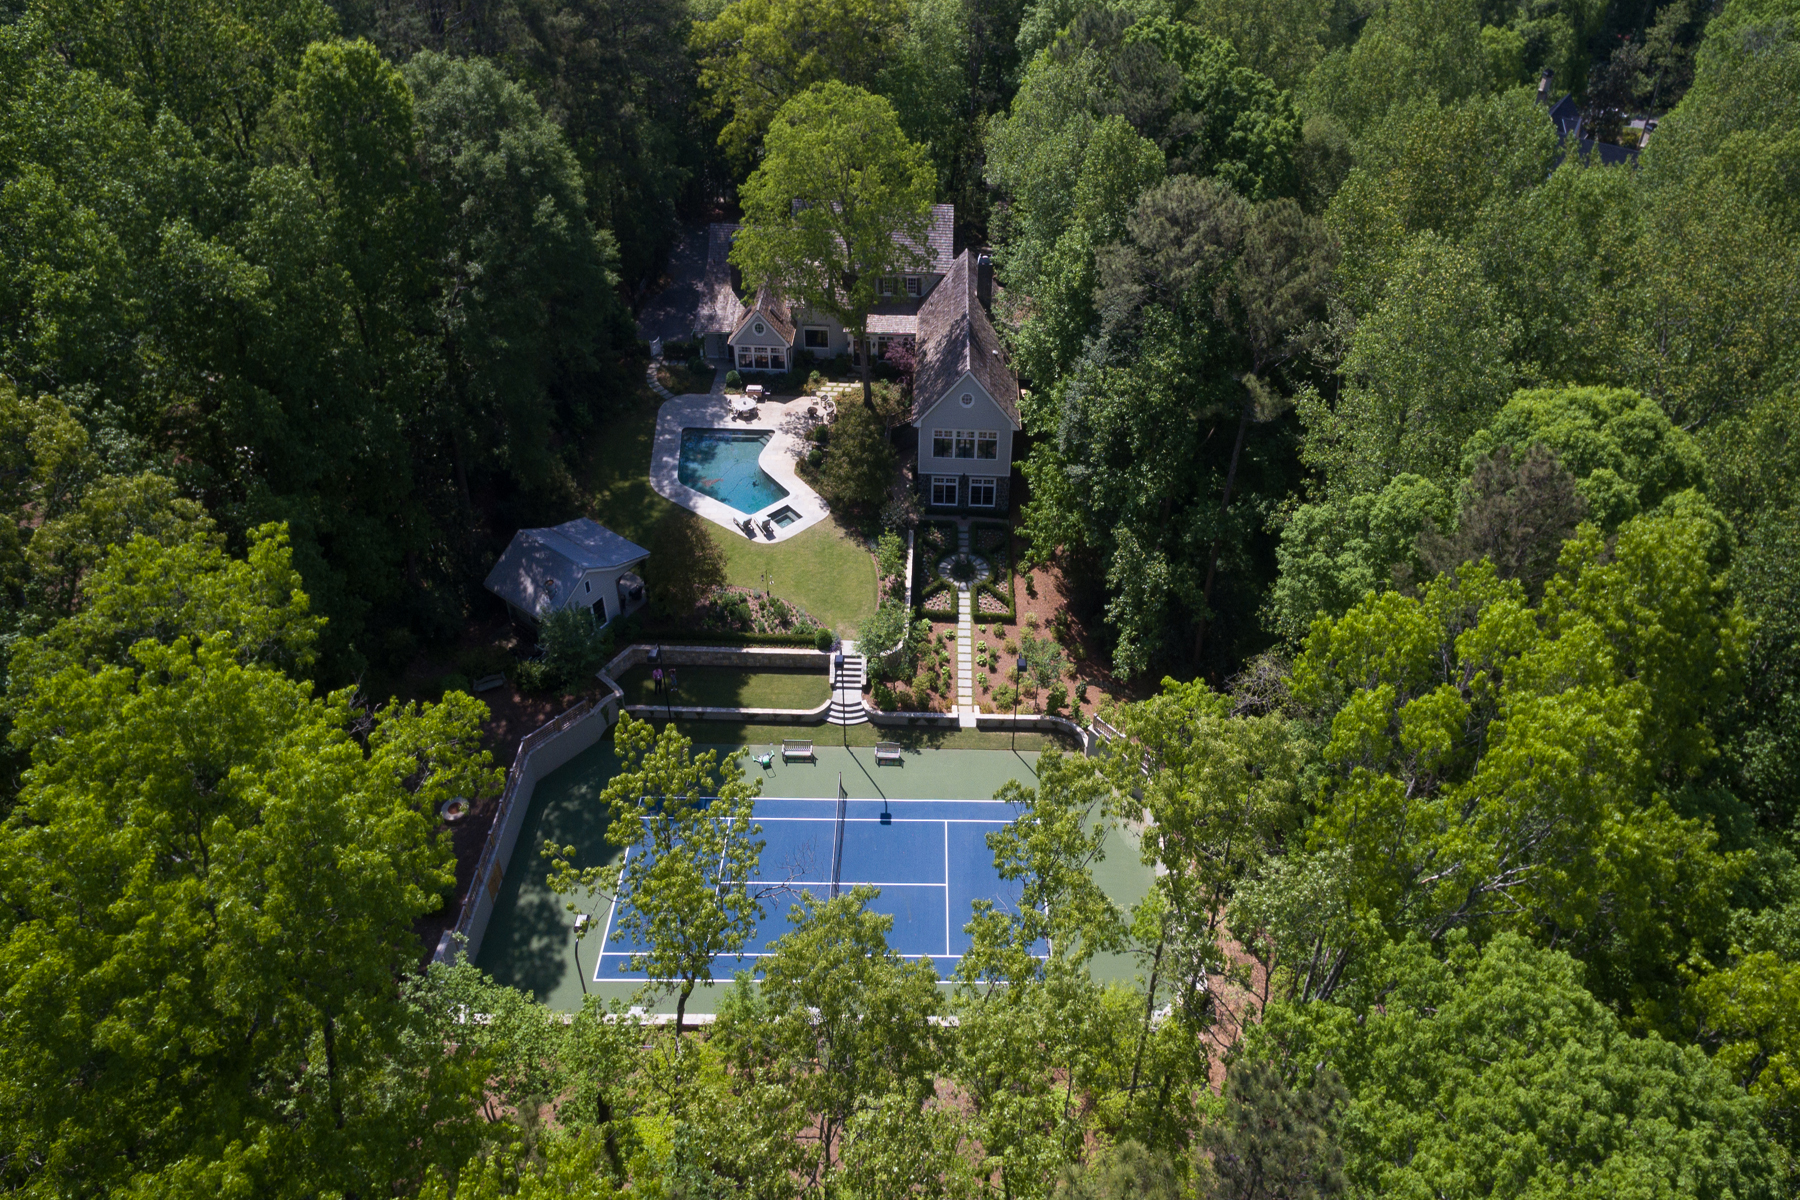 Частный односемейный дом для того Продажа на Amazing 4.86 Acre Estate Property With Lighted Tennis Court And Pool 4000 Conway Valley Road NW Buckhead, Atlanta, Джорджия, 30327 Соединенные Штаты